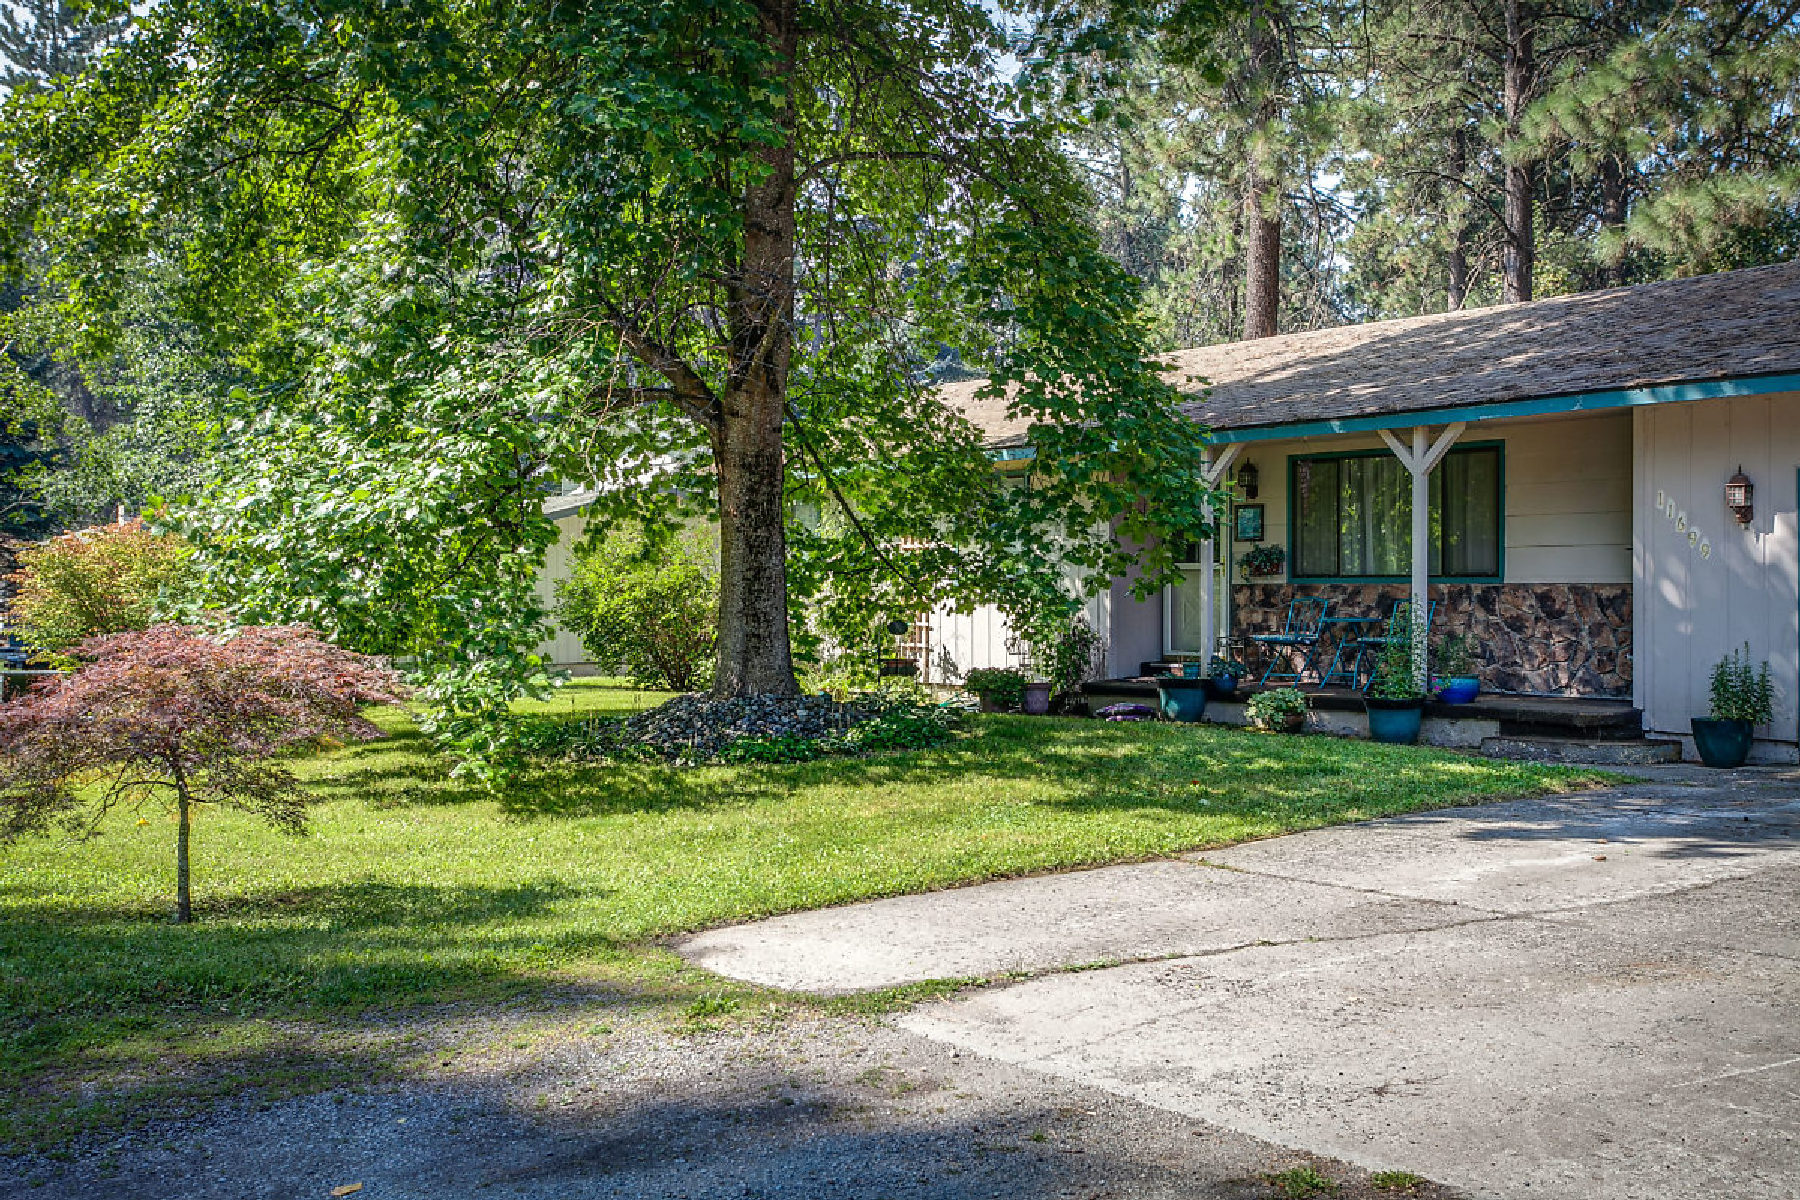 Maison unifamiliale pour l à vendre à NORTH IDAHO HIDDEN JEWEL 11699 EMERALD, Hayden, Idaho, 83835 États-Unis